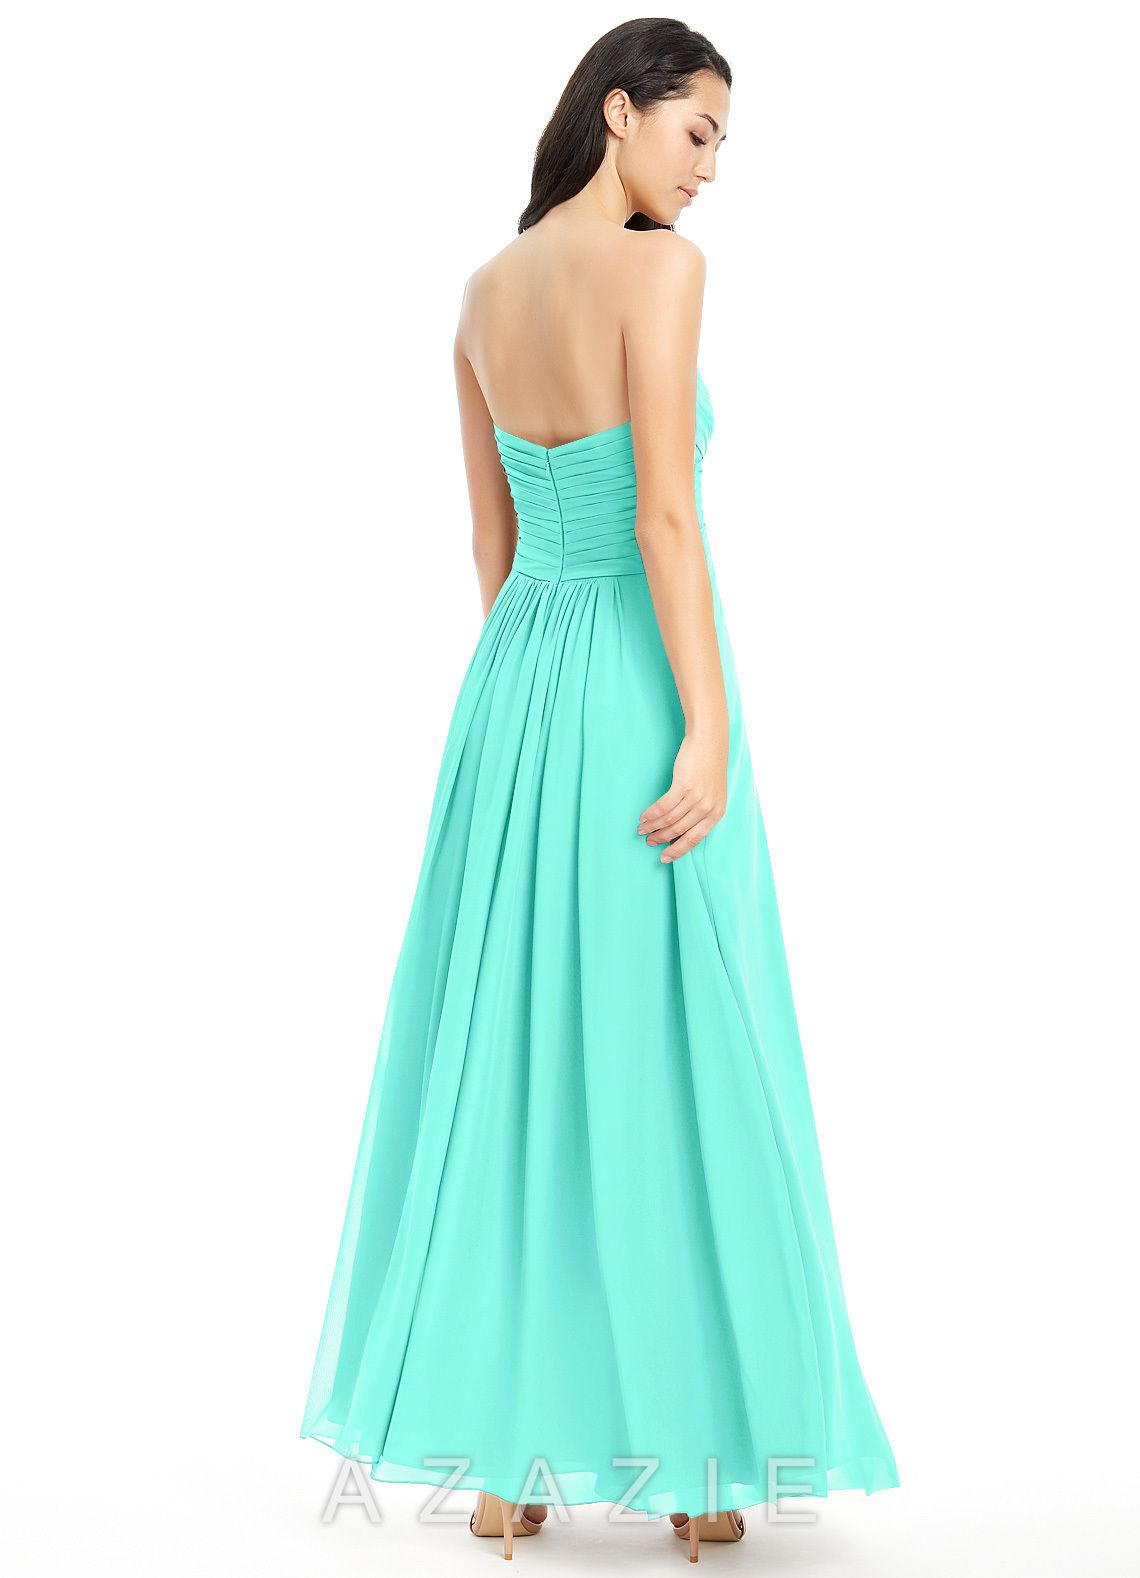 c0c22d3726 Shop Azazie Bridesmaid Dress - Yazmin in Chiffon. Find the perfect  made-to-order bridesmaid dresses for your bridal party in your favorite  color